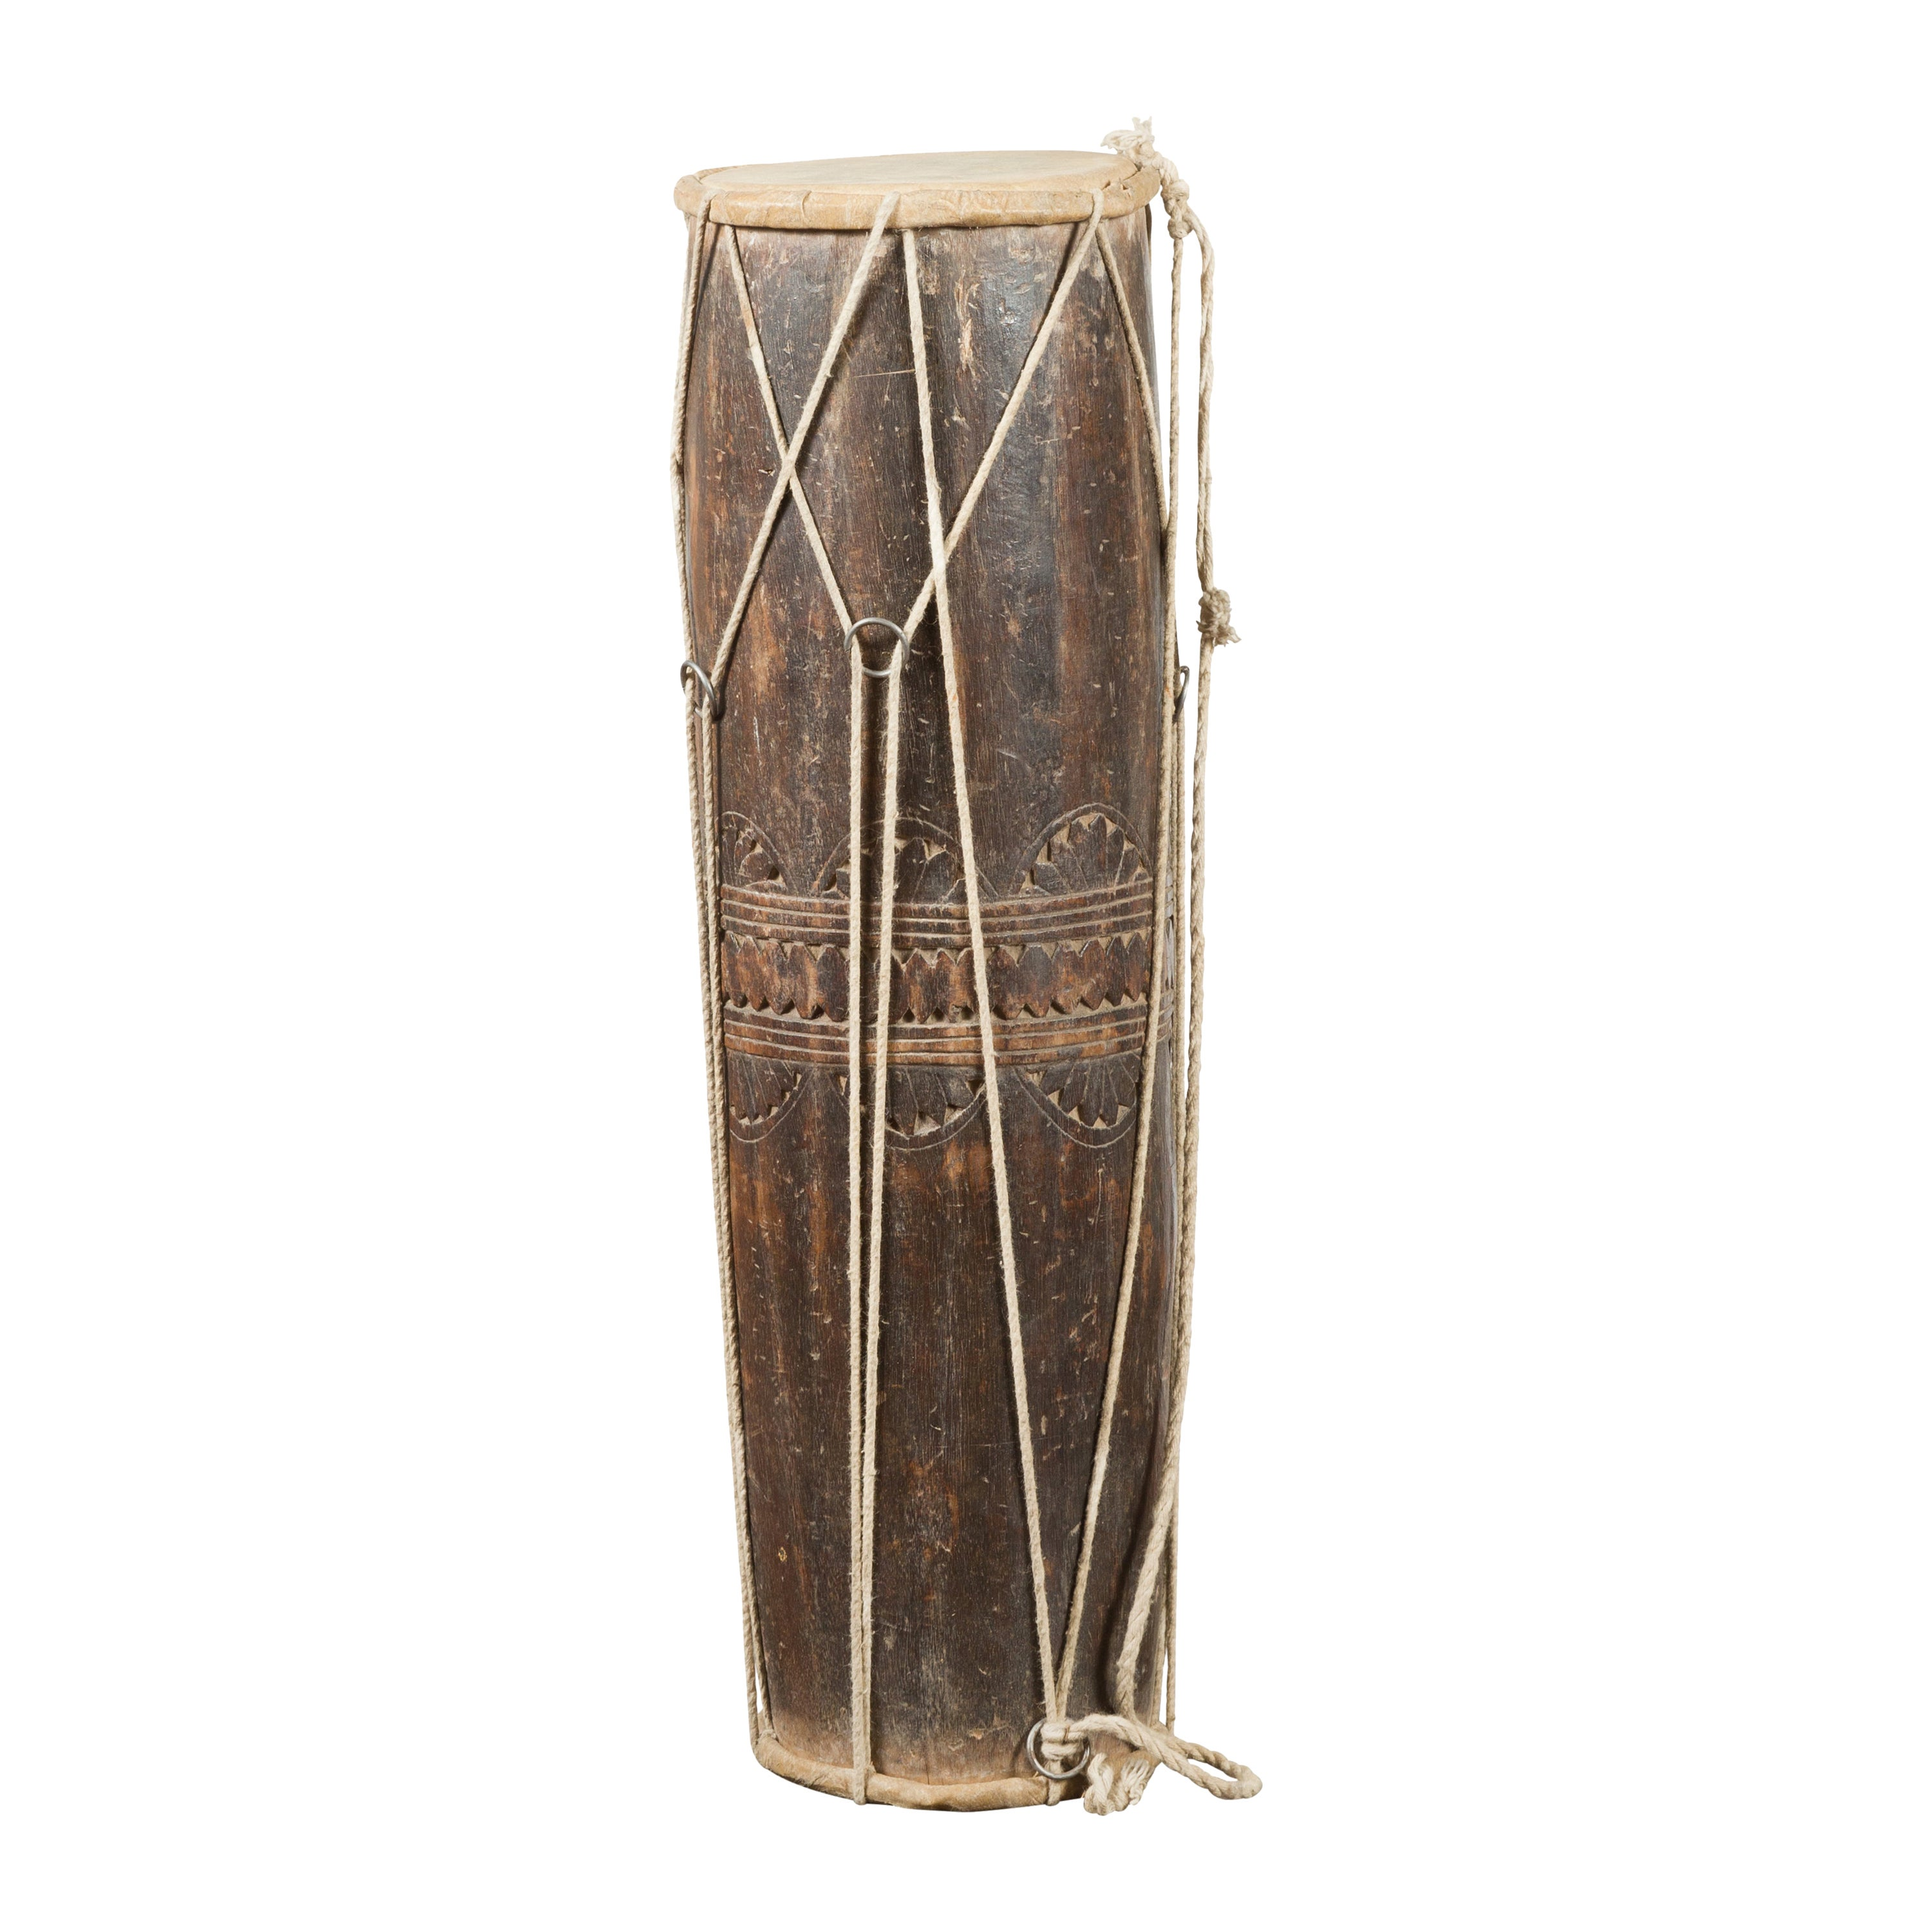 19th Century Thai Ceremonial Drum with Ropes and Leather Drumhead